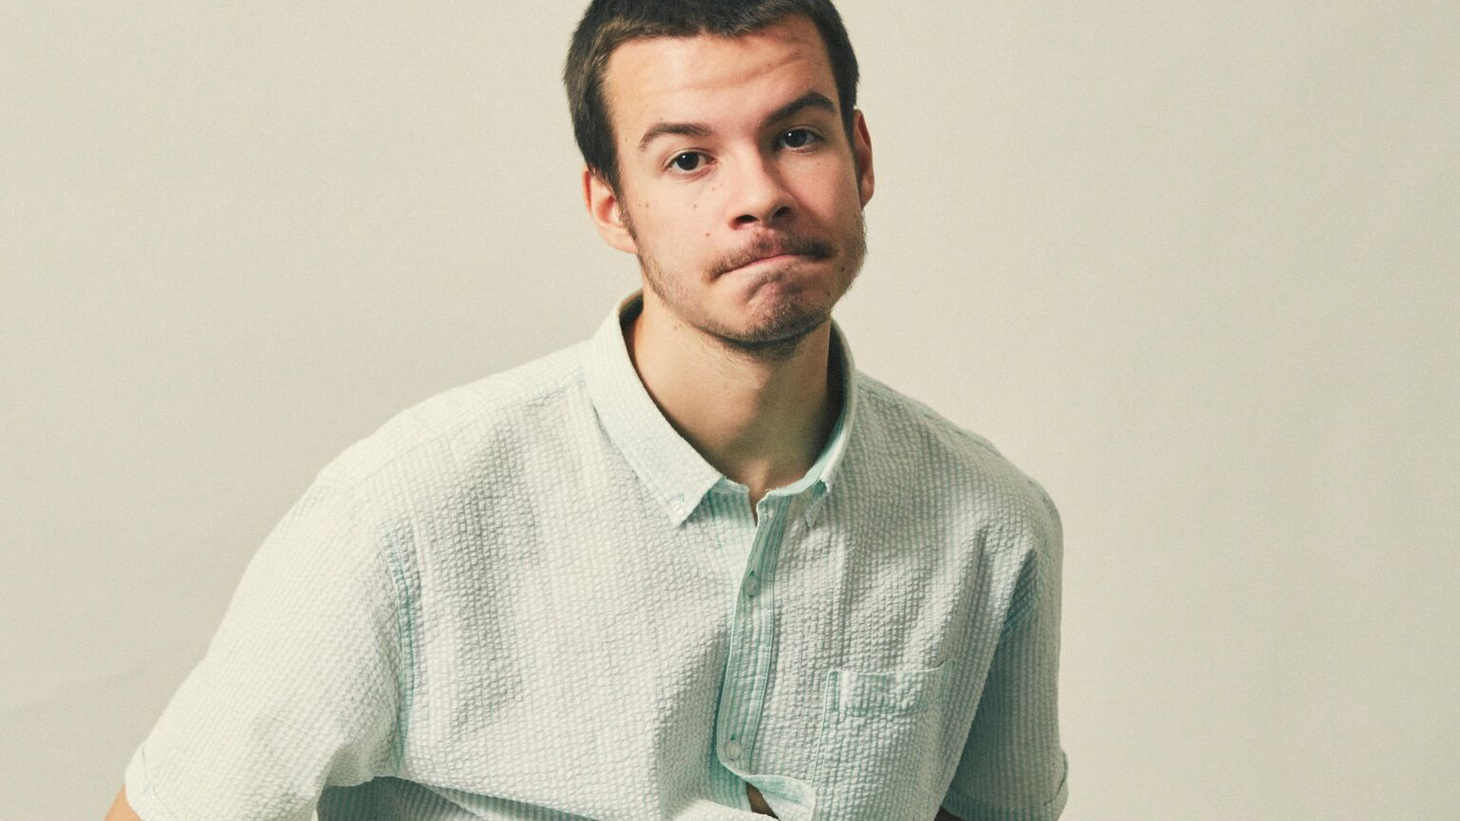 What do you do when you don't know what to do? Alex O'Connor aka Rex Orange County was fed-up with school and at a loss, when the self-taught drummer decided he wanted more than bit part roles in bands.